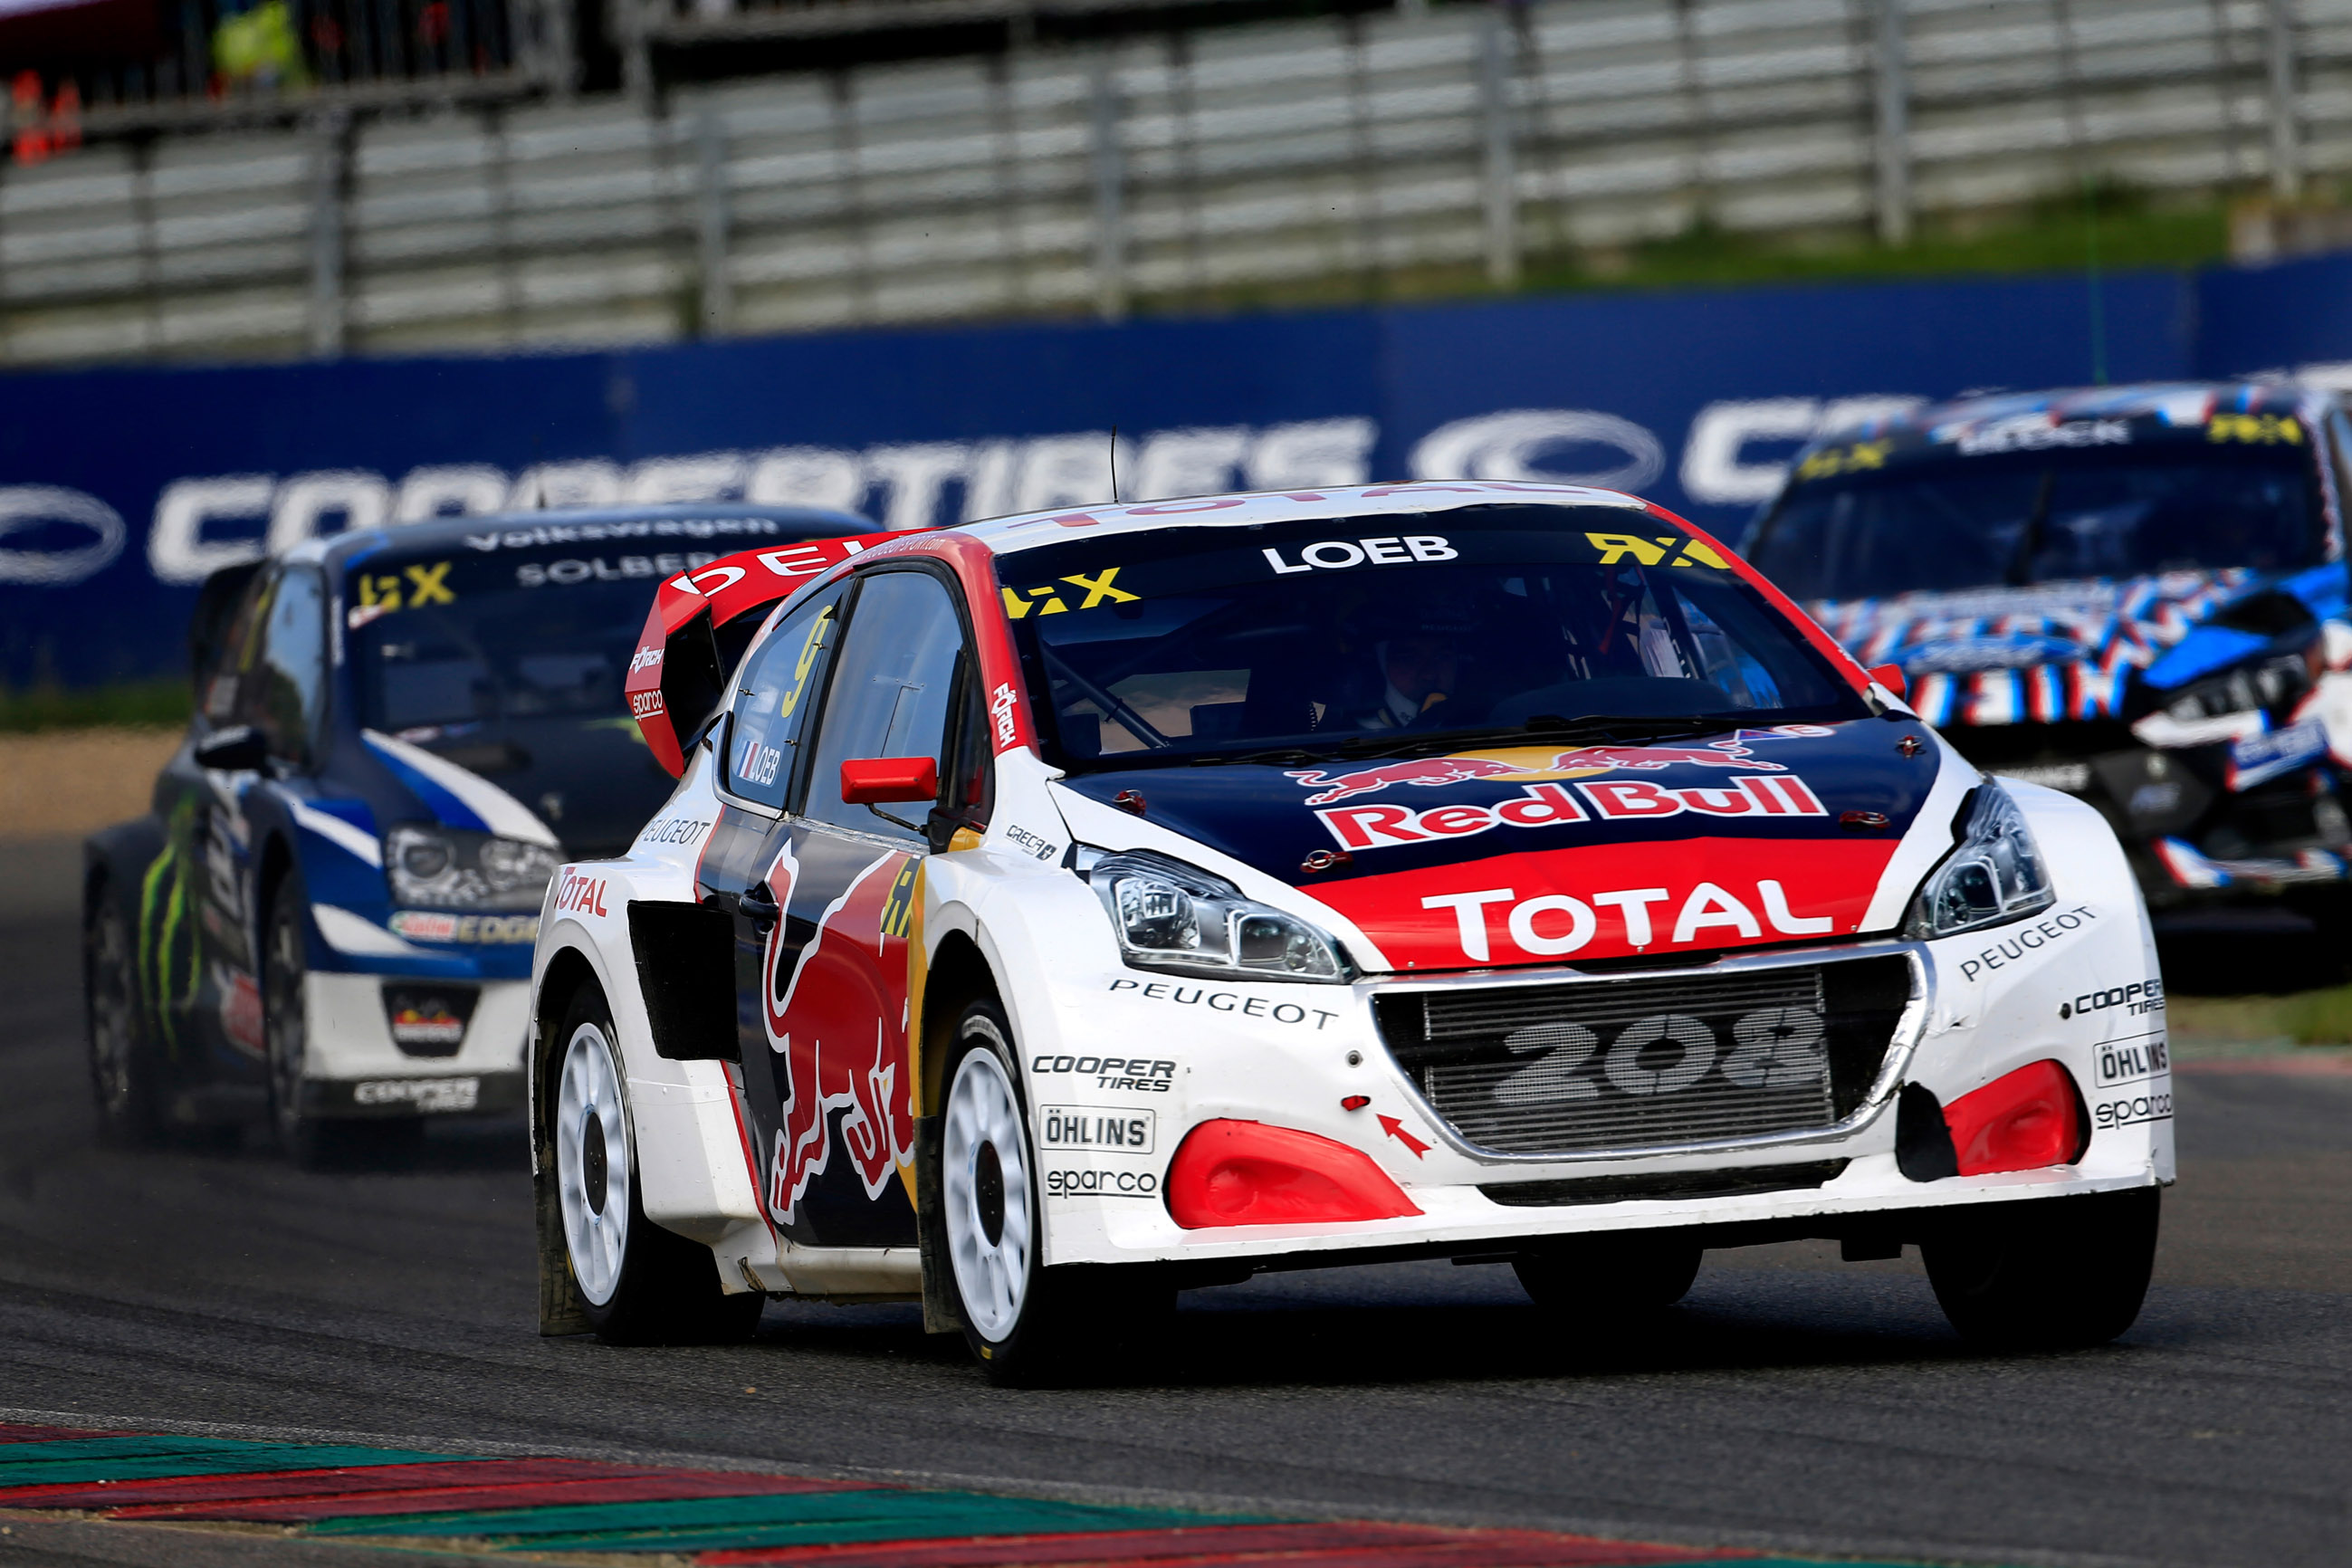 09 LOEB Sebastien (fra) Team Peugeot Hansen Peugeot 208 action during the Coyote World RX in Belgium 2017, circuit jules Tacheny, on May 12 to 14 -  Photo Paulo Maria / DPPI